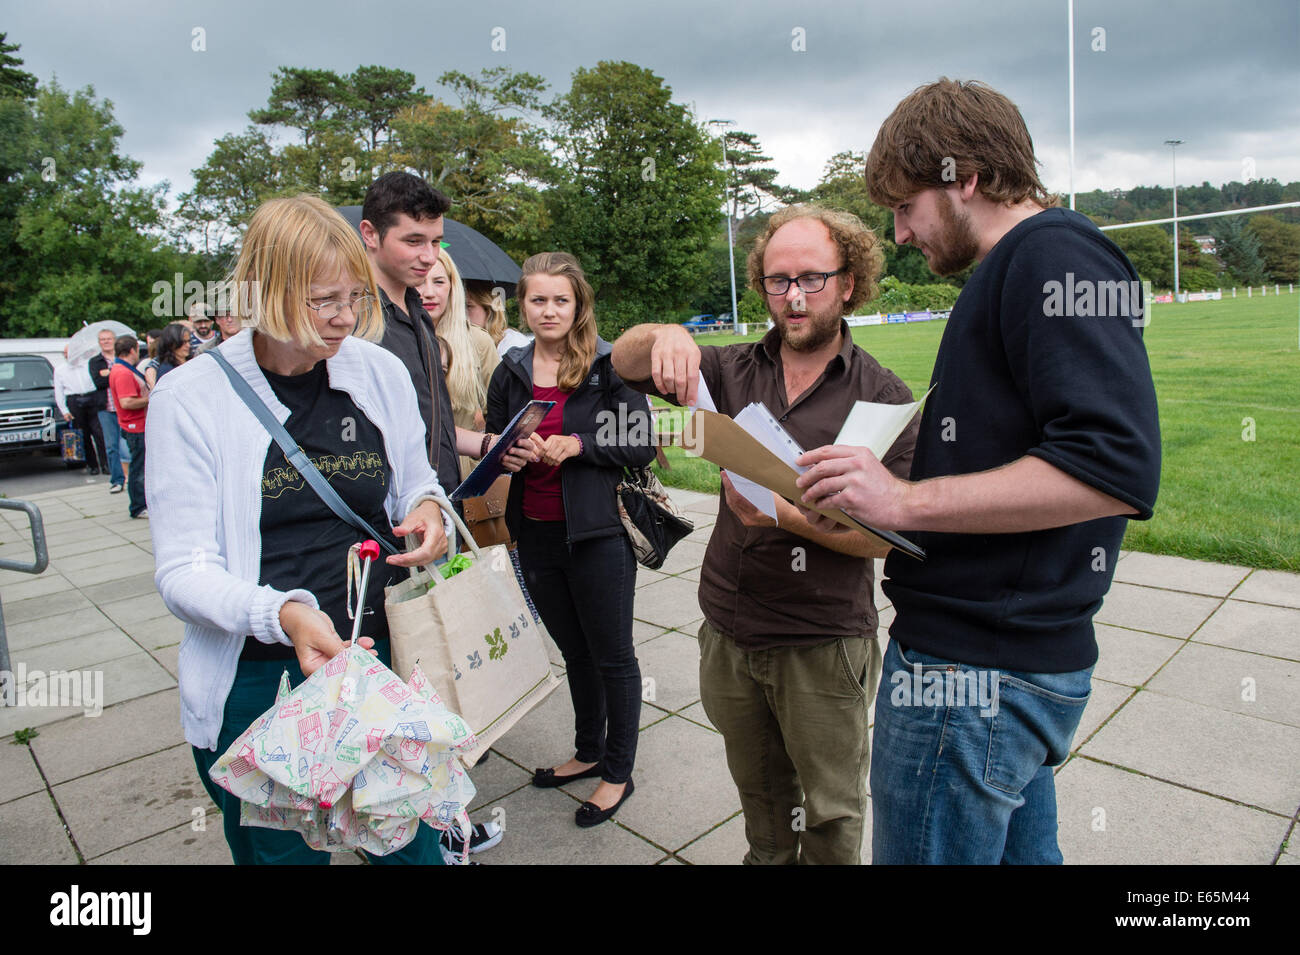 Aberystwyth, Wales, UK. 15th Aug, 2014.  Hundreds of people of all ages turned up to open auditions at Aberystwyth - Stock Image